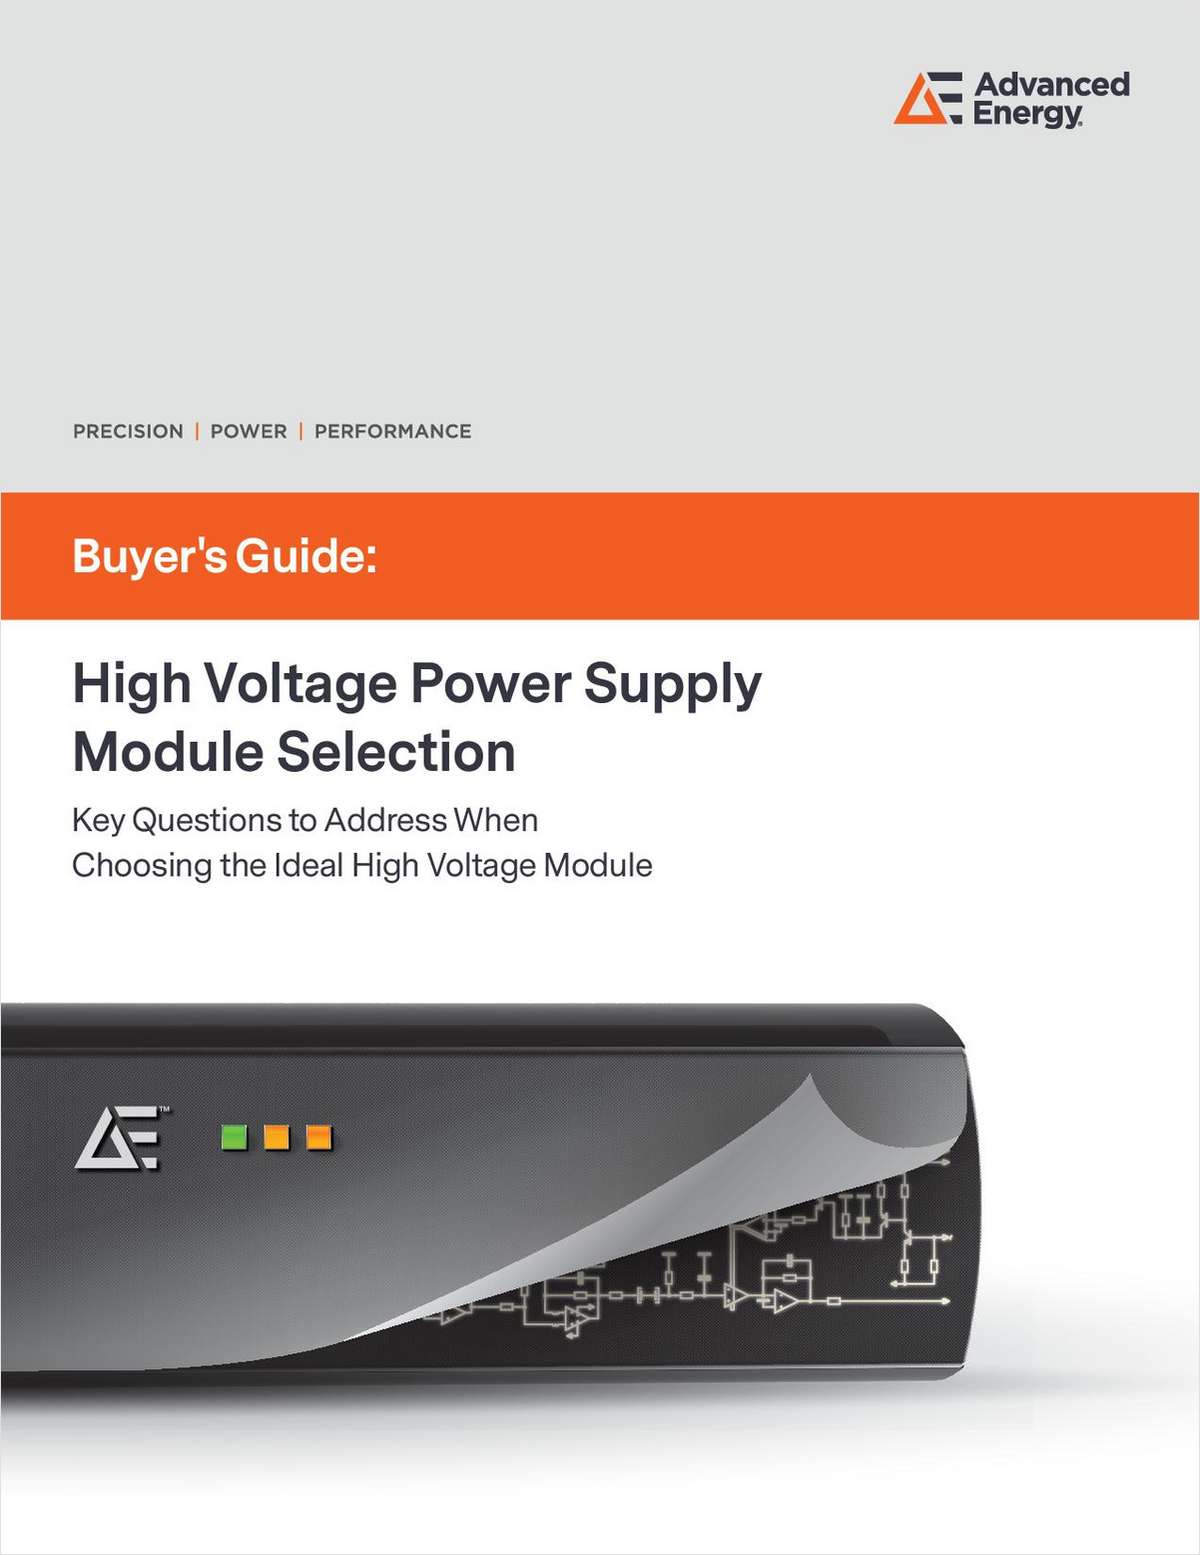 High Voltage Power Supply Module Selection Key Questions To Address When Choosing The Ideal